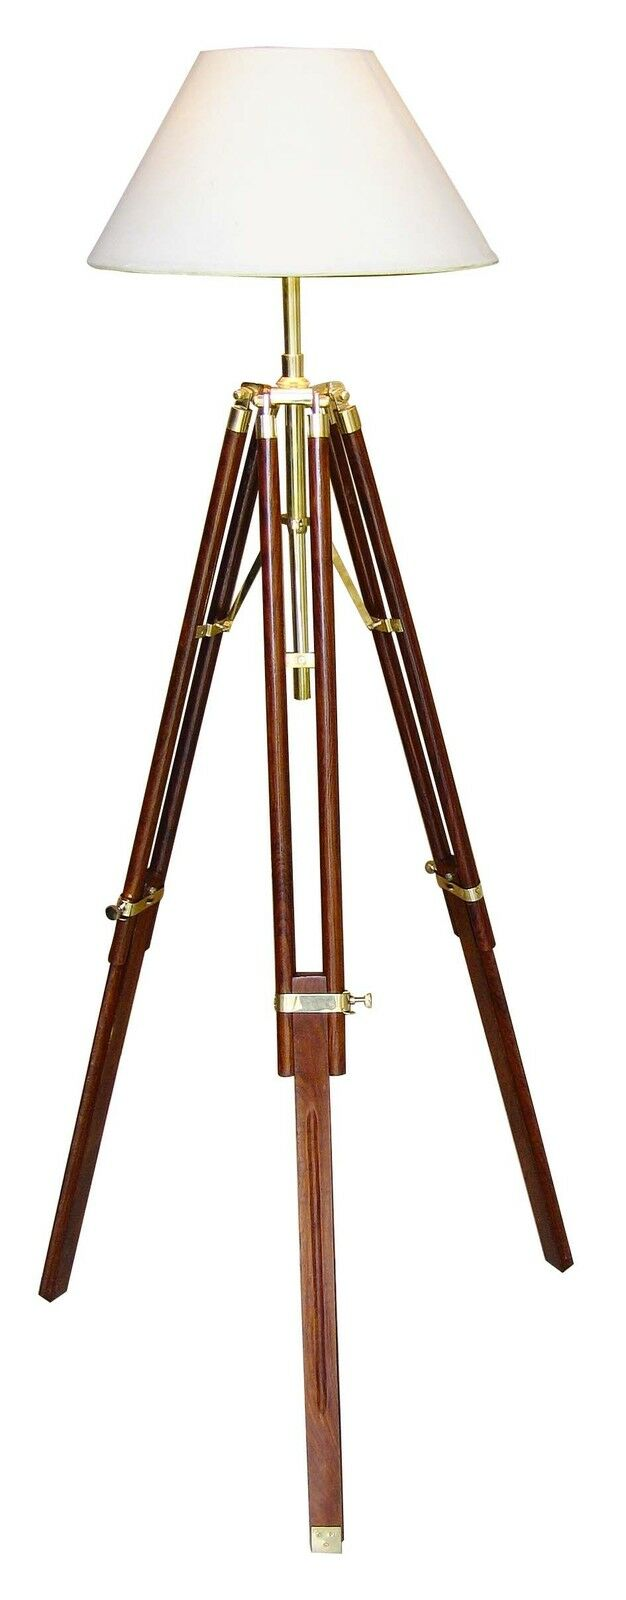 stehlampe kolonialstil tripod dreibein stativ holz messing 146 cm schirm 35 cm eur 158 95. Black Bedroom Furniture Sets. Home Design Ideas